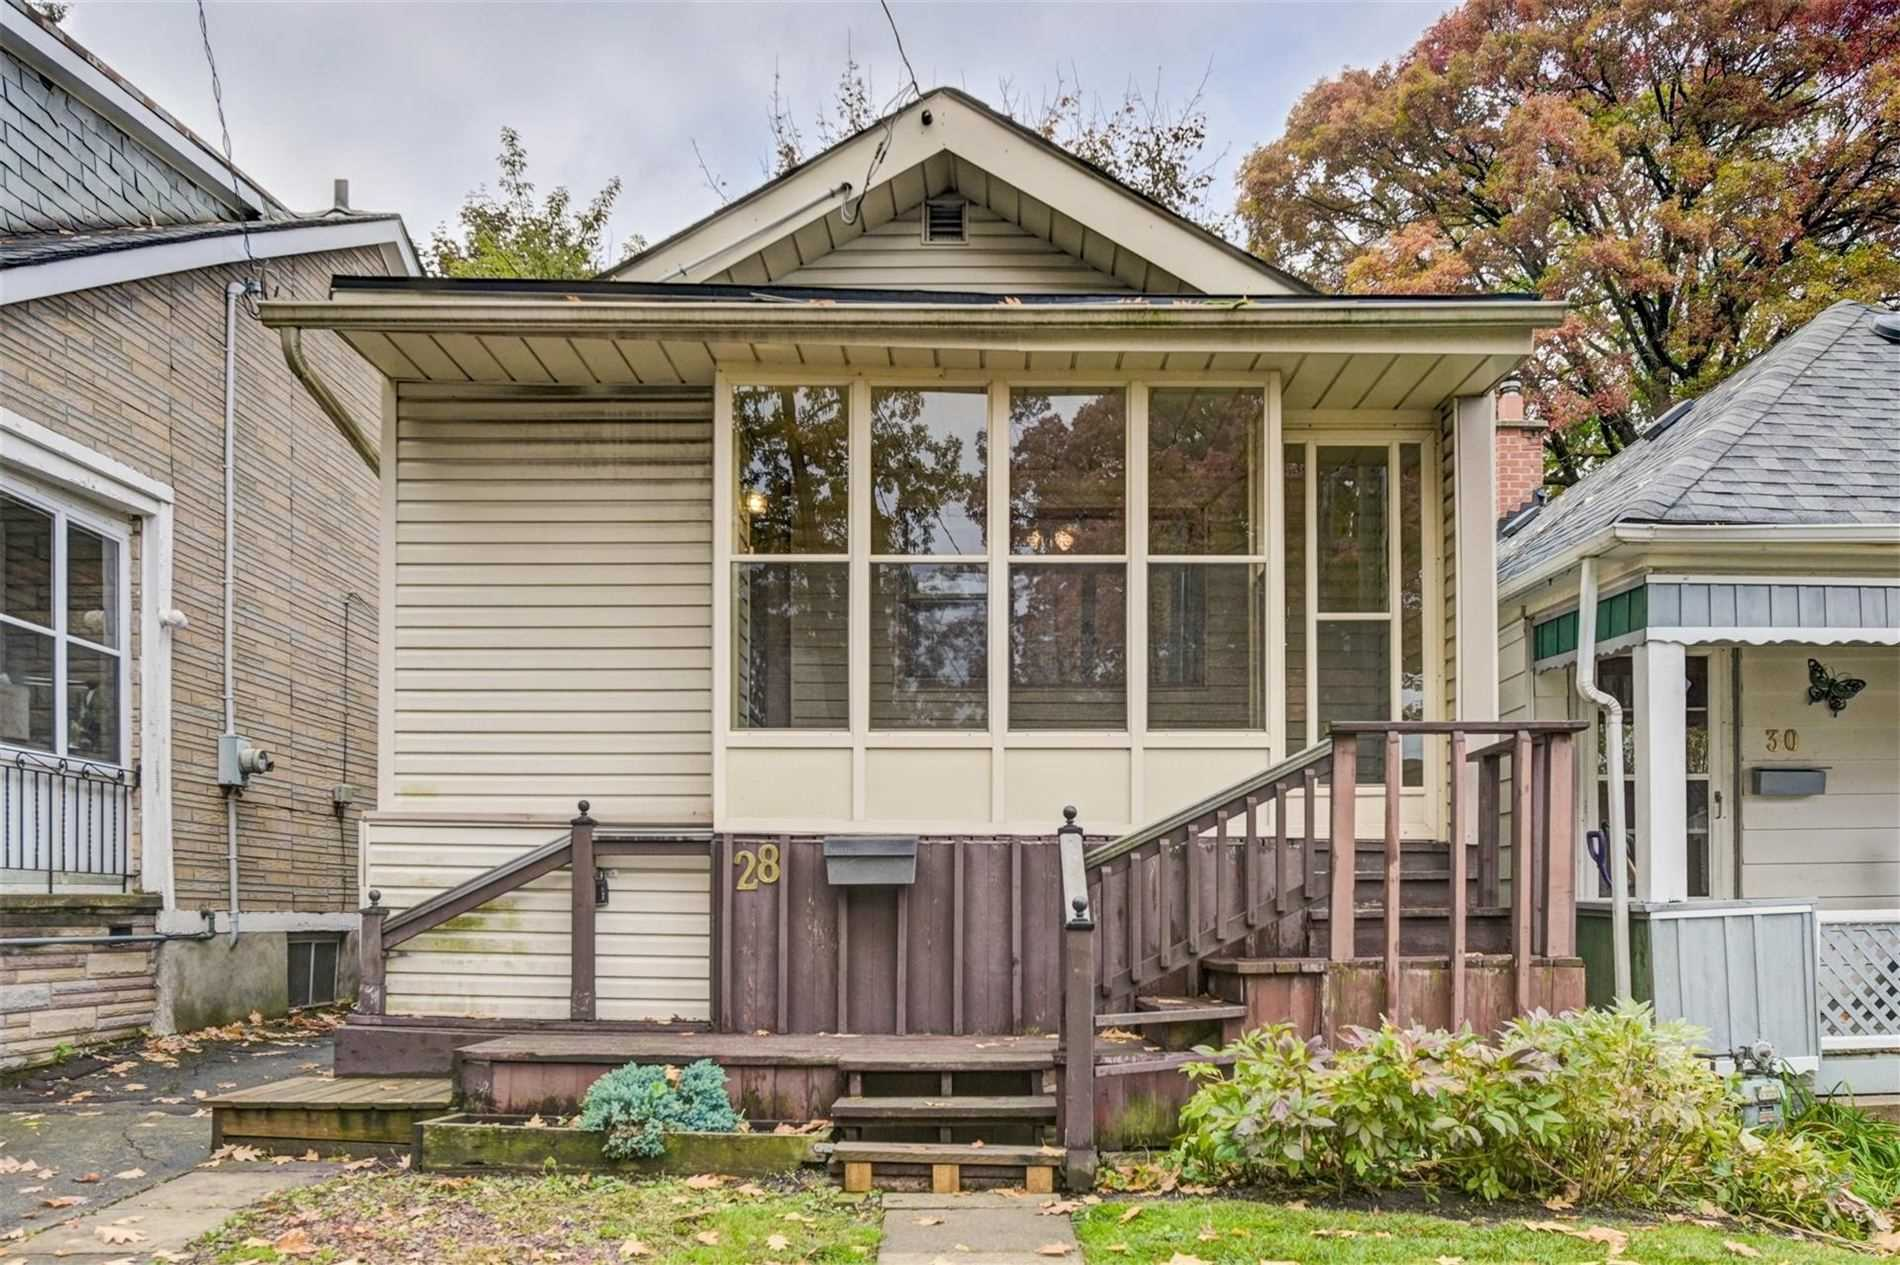 pictures of house for sale MLS: E4964616 located at 28 Kenworthy Ave, Toronto M1L3B2